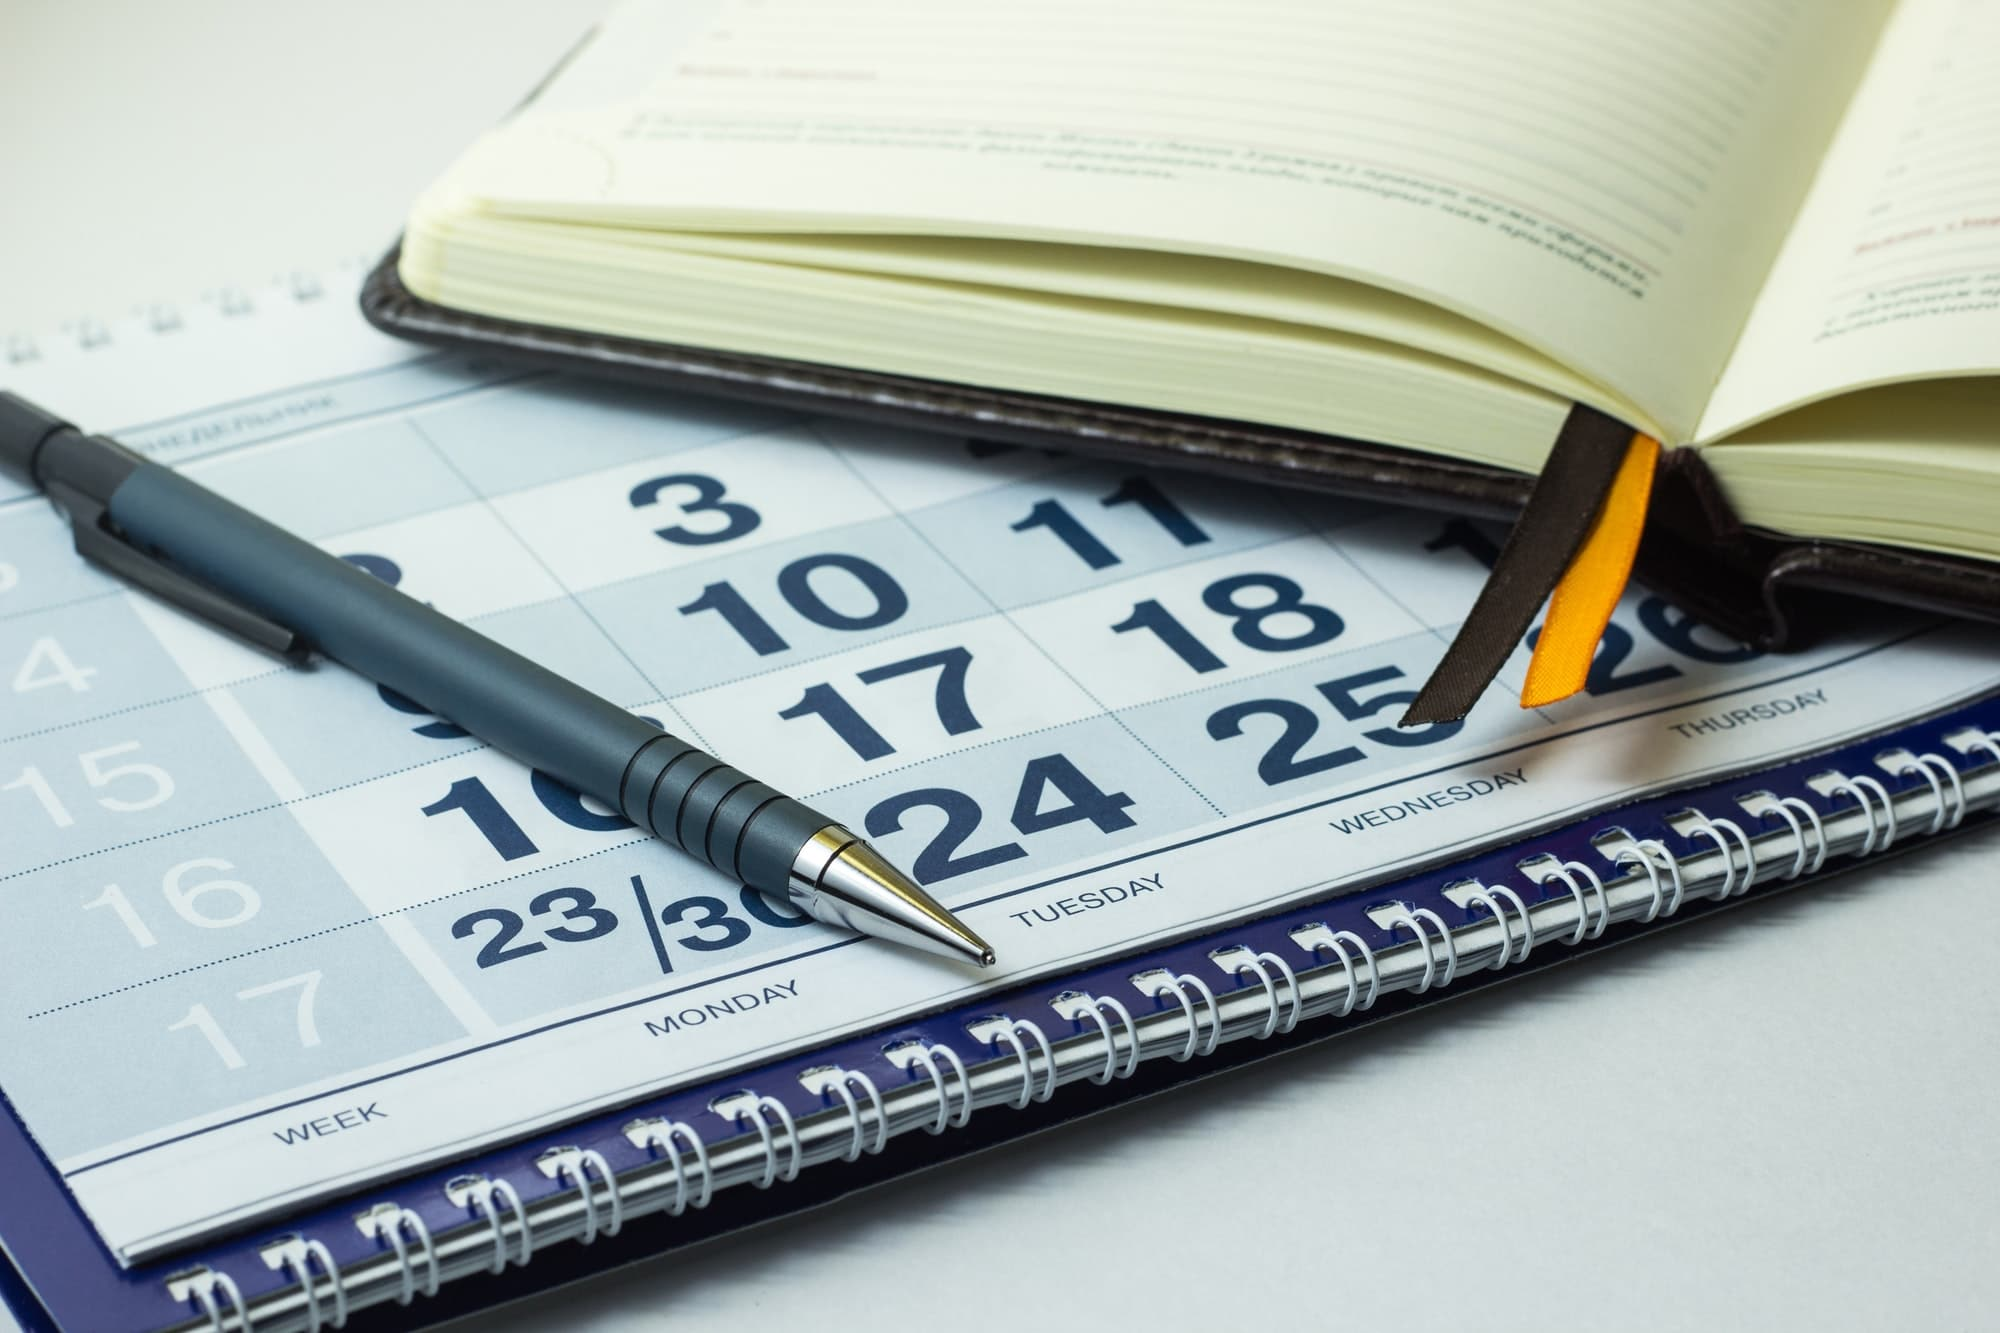 Business notebook on the calendar background